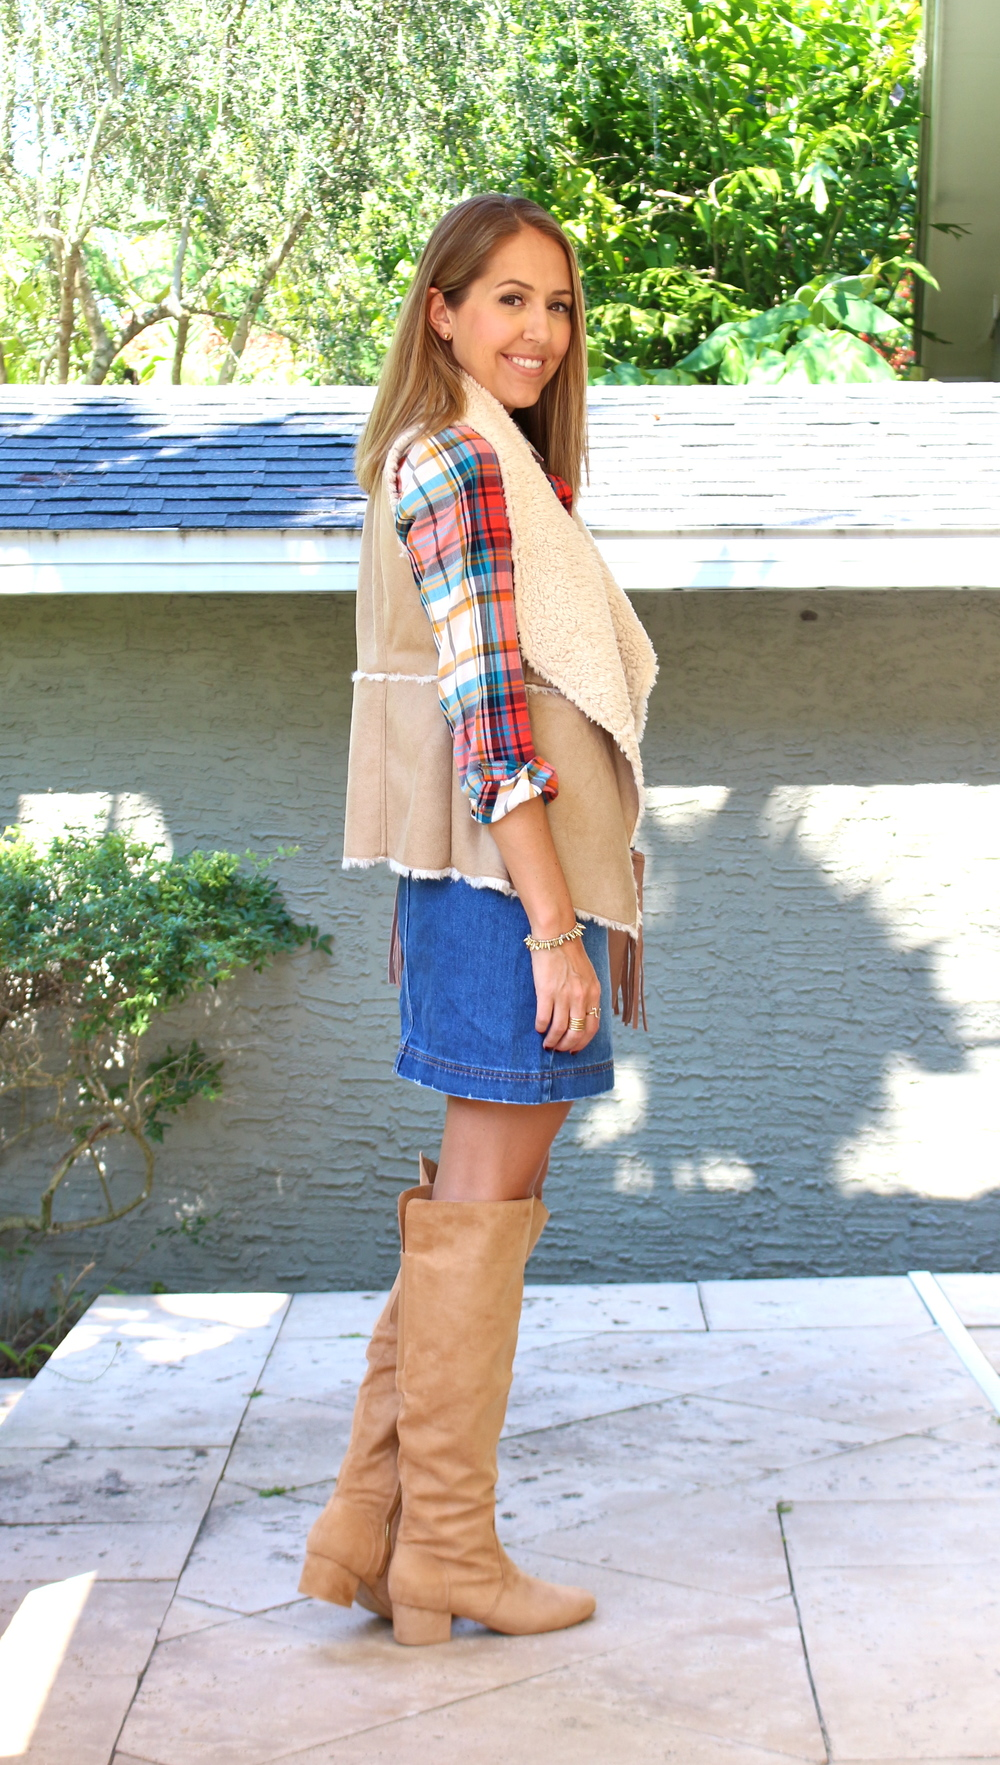 Shearling vest, denim skirt, suede boots